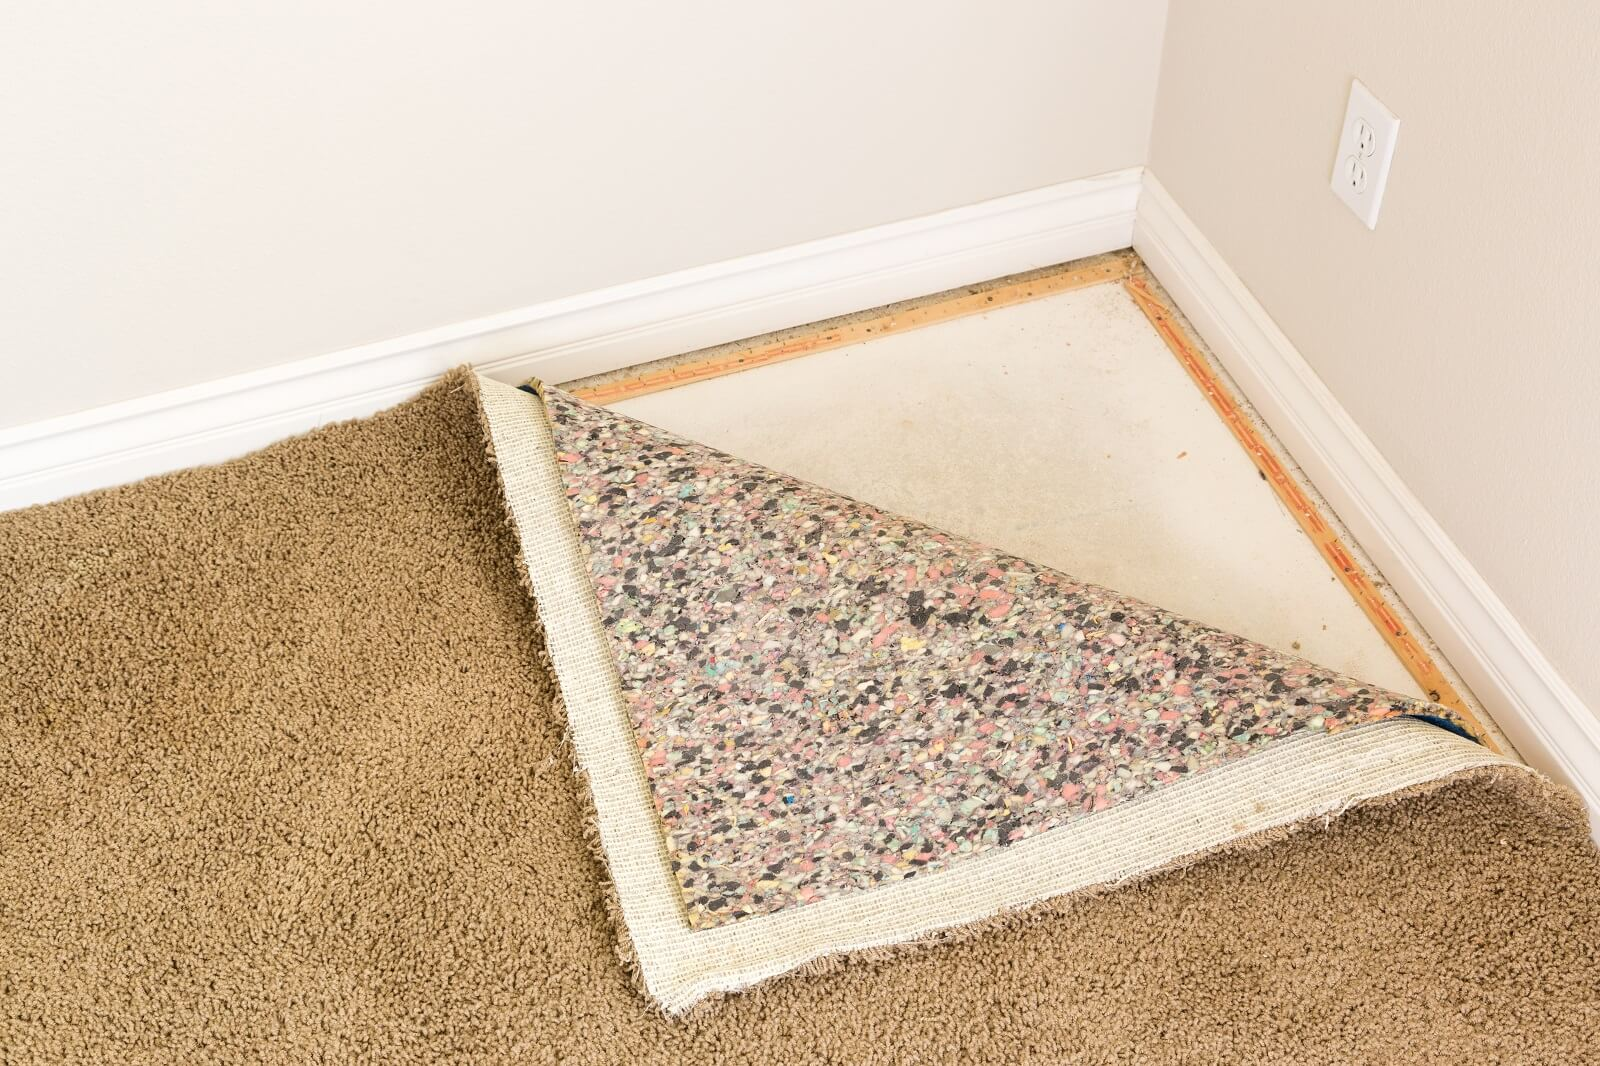 How To Deal With Carpet Mold